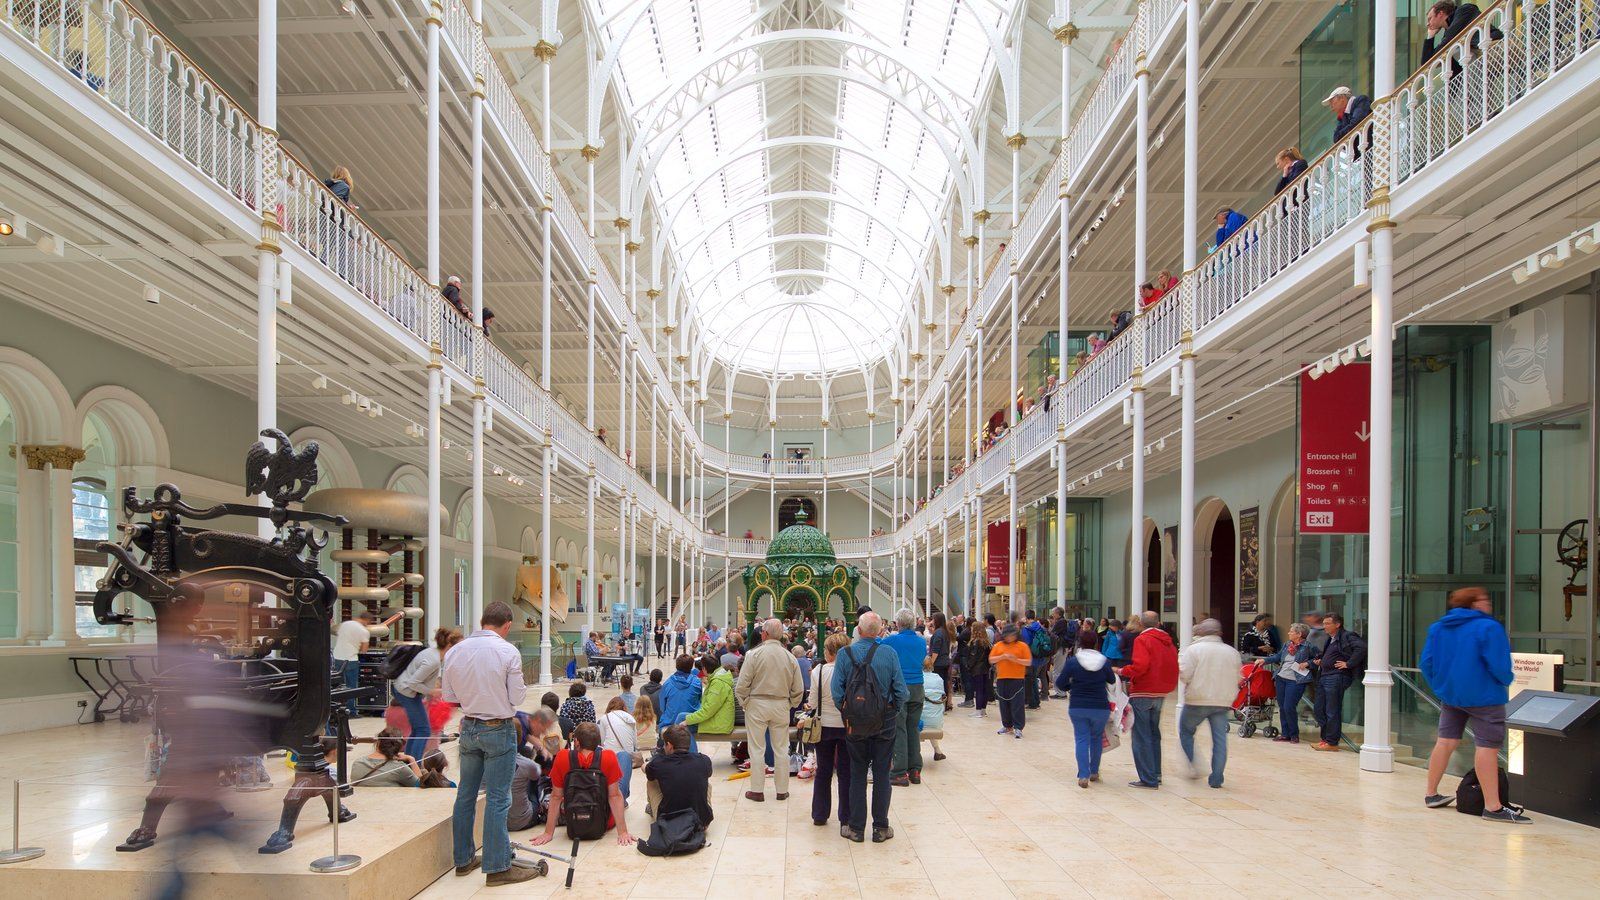 National Museum of Scotland showing interior views as well as a large group of people